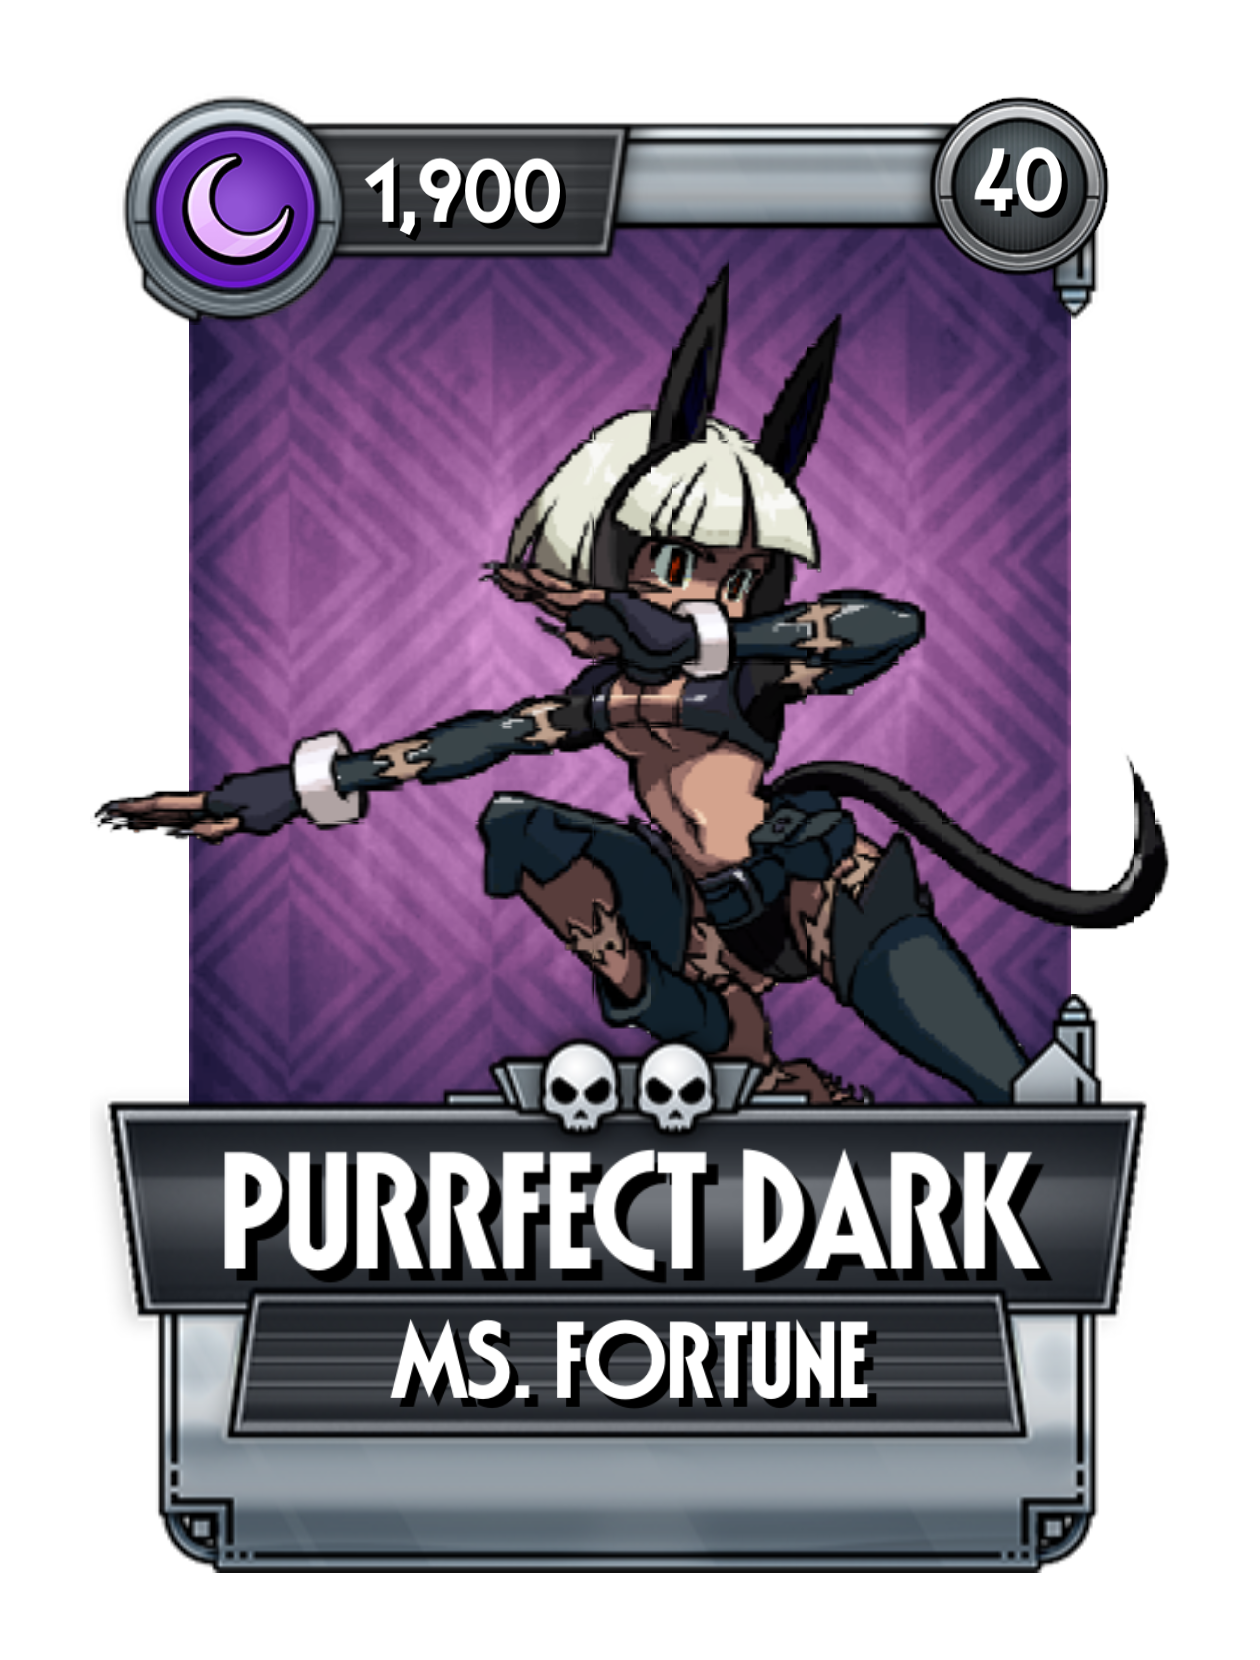 Purrfect Dark